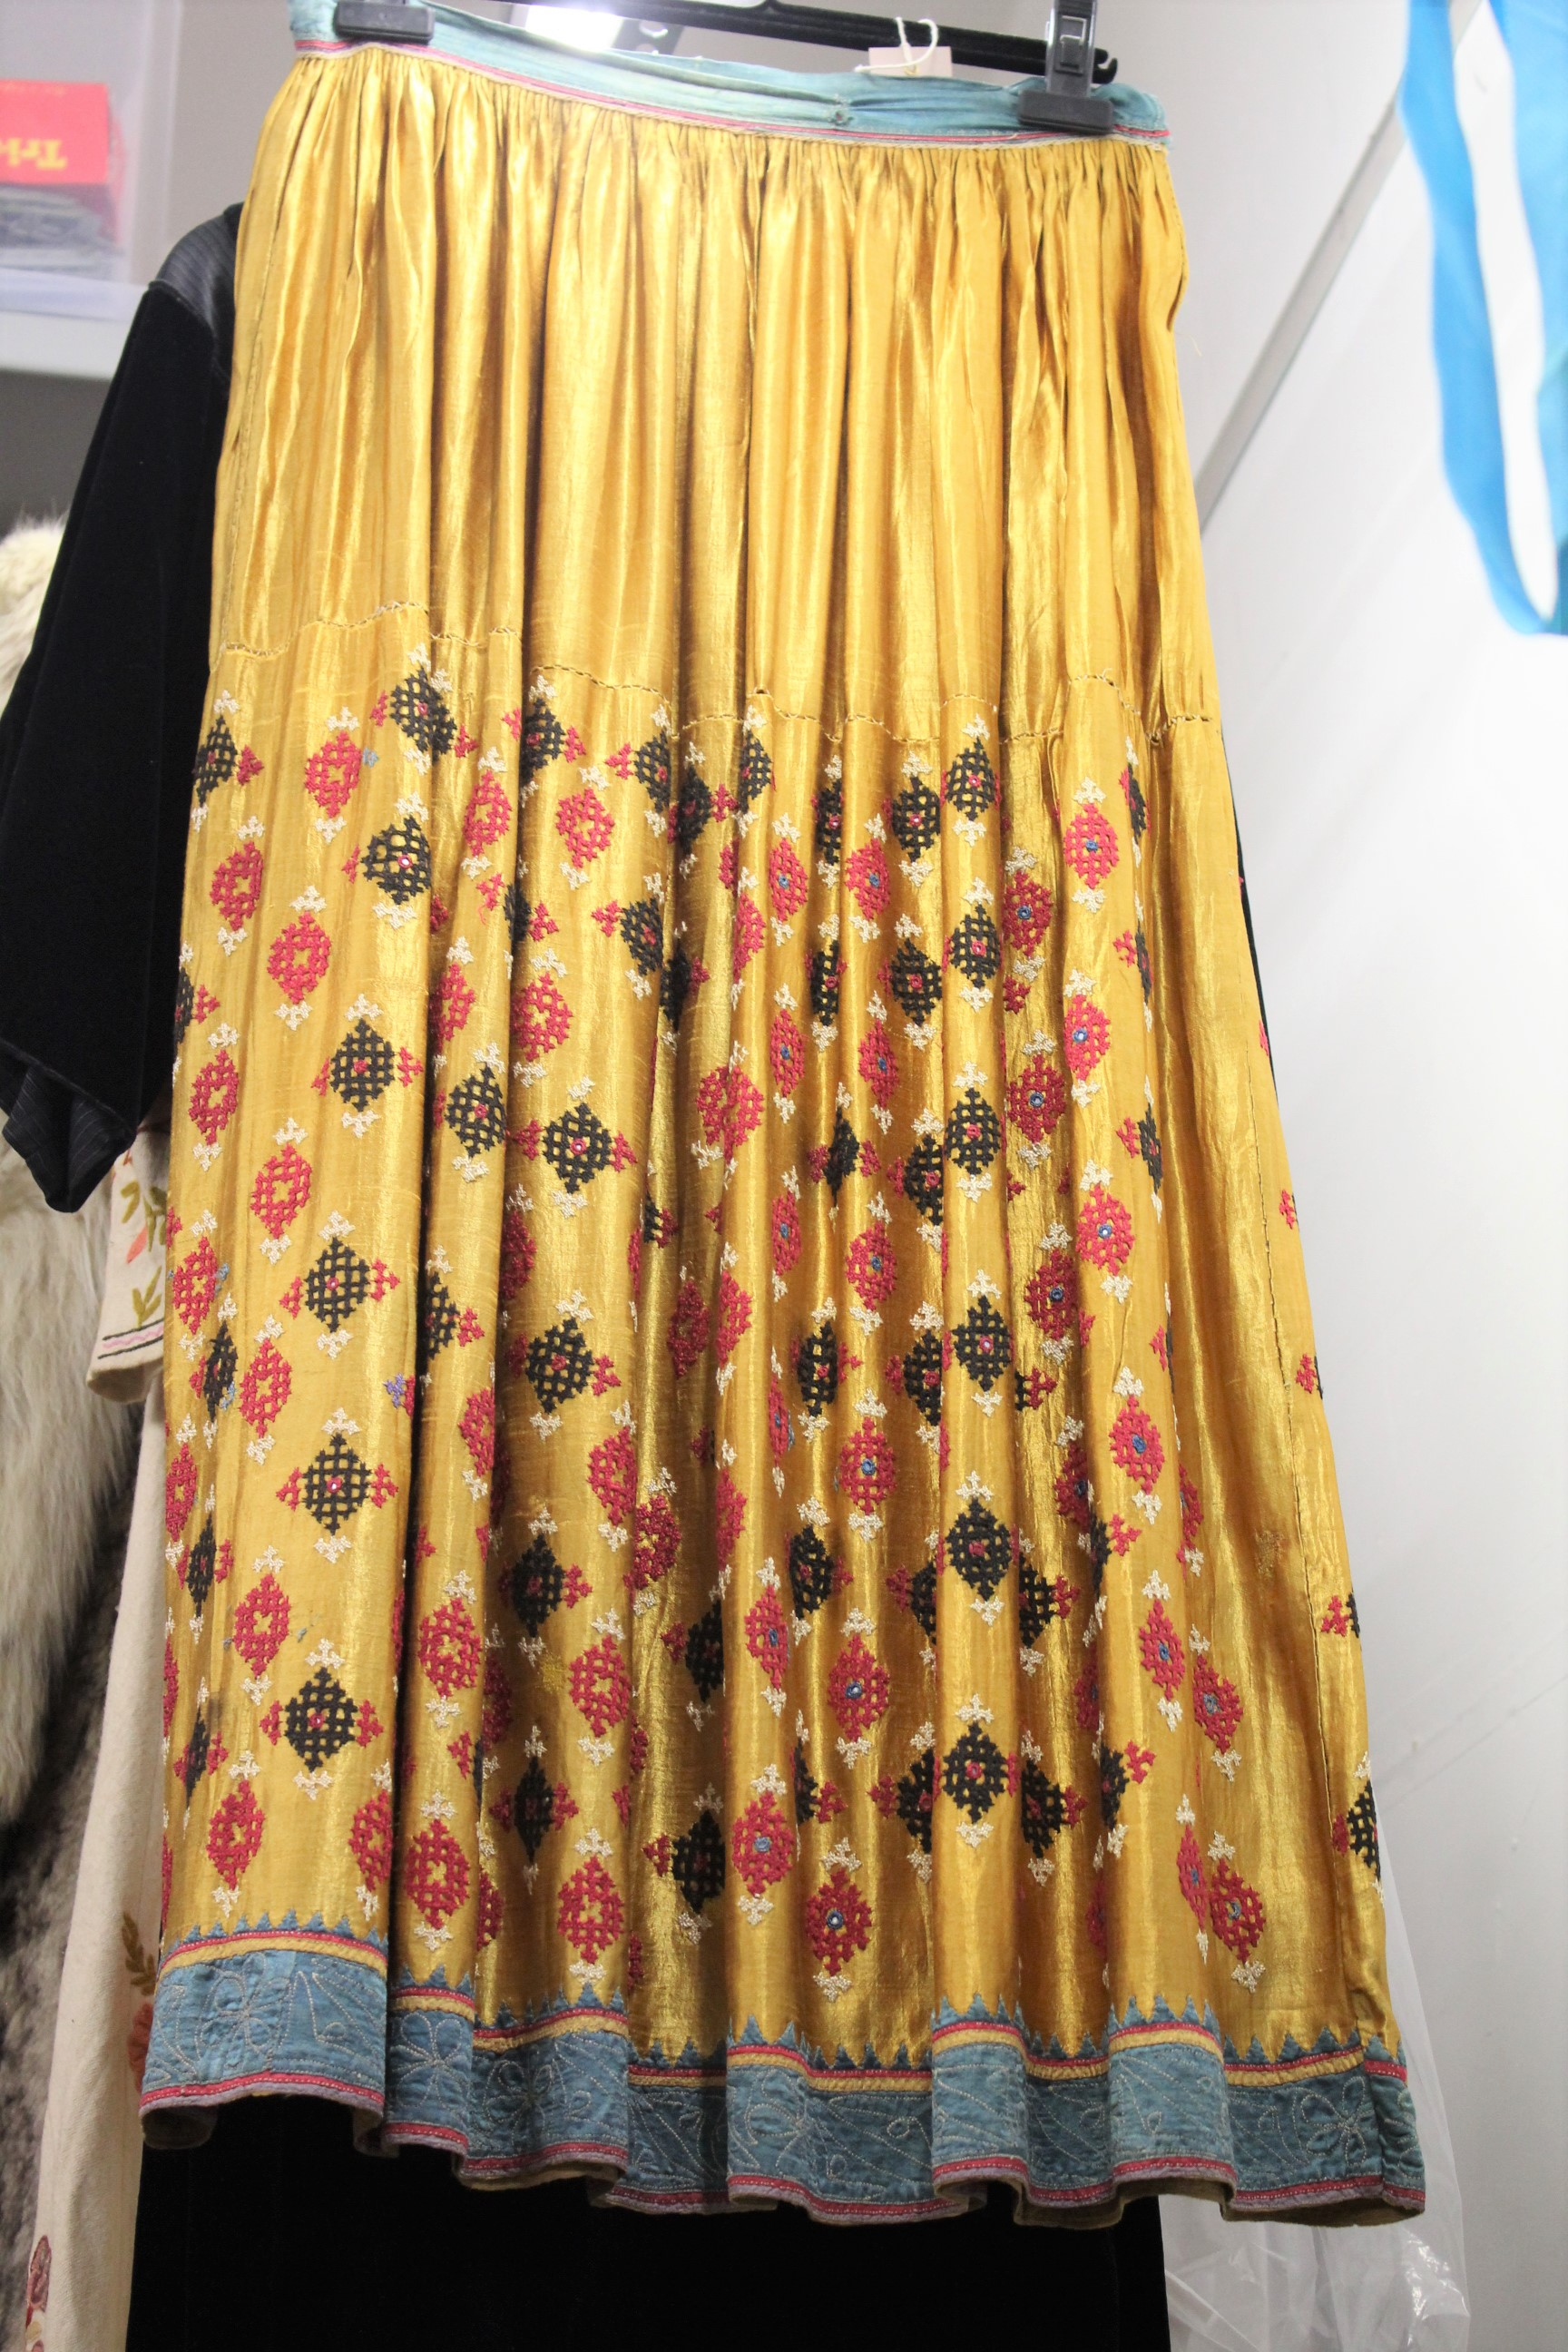 ANTIQUE INDIAN SKIRT a full length gathered skirt made from 19thc gold coloured silk, embroidered